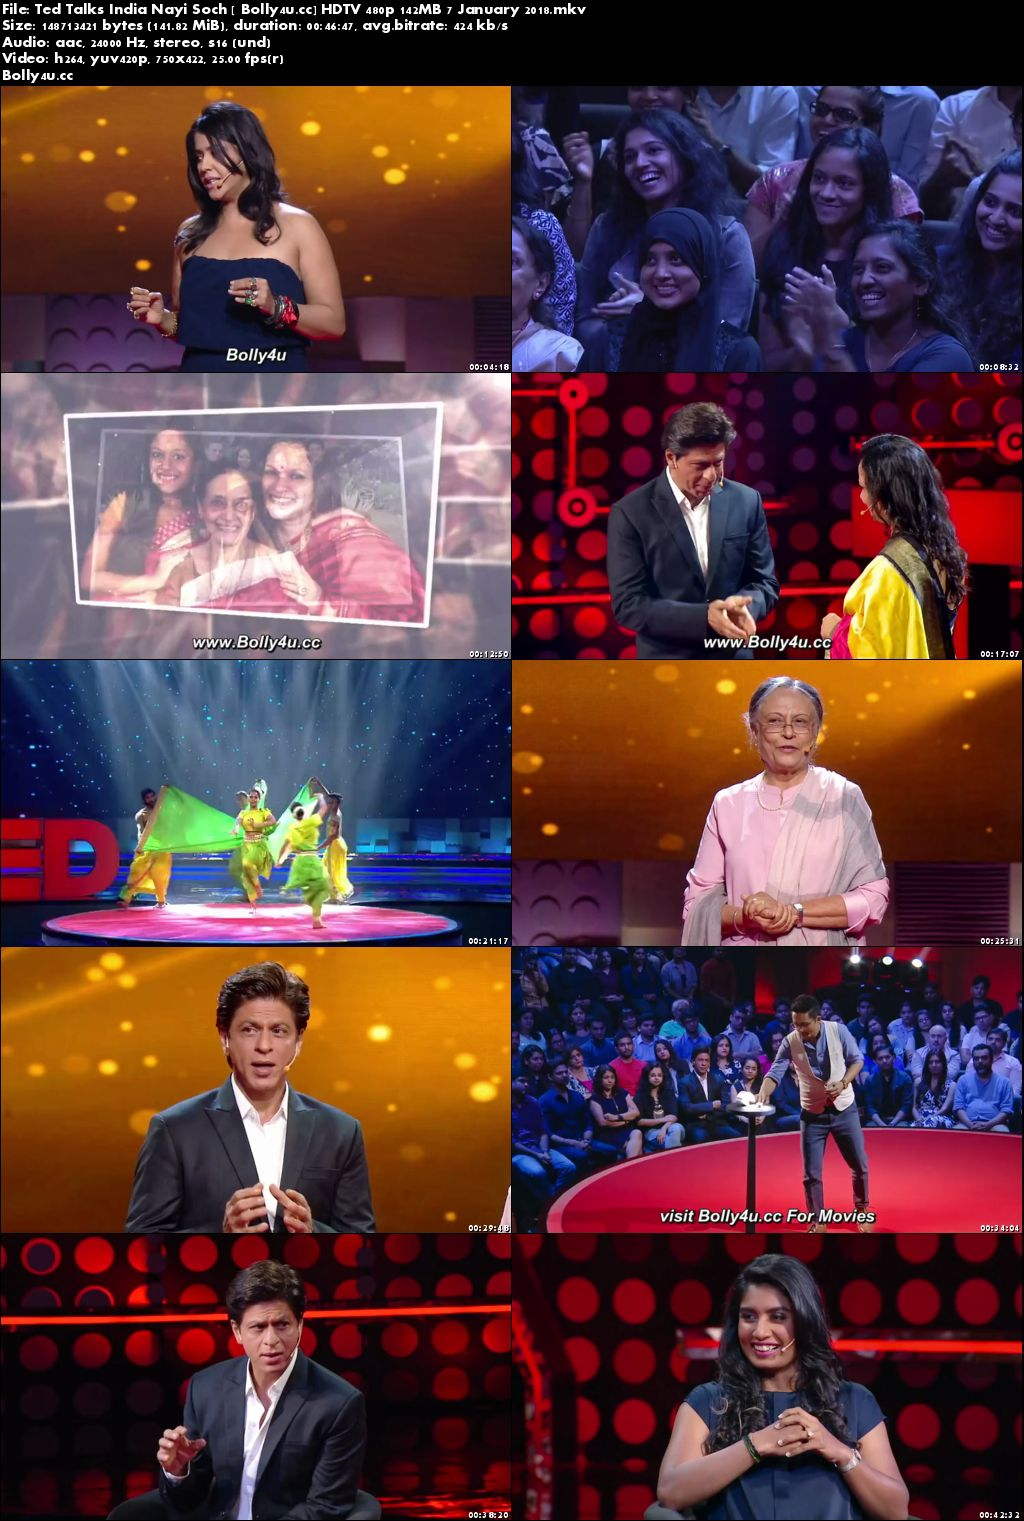 Ted Talks India Nayi Soch HDTV 480p 140MB 07 January 2018 Download